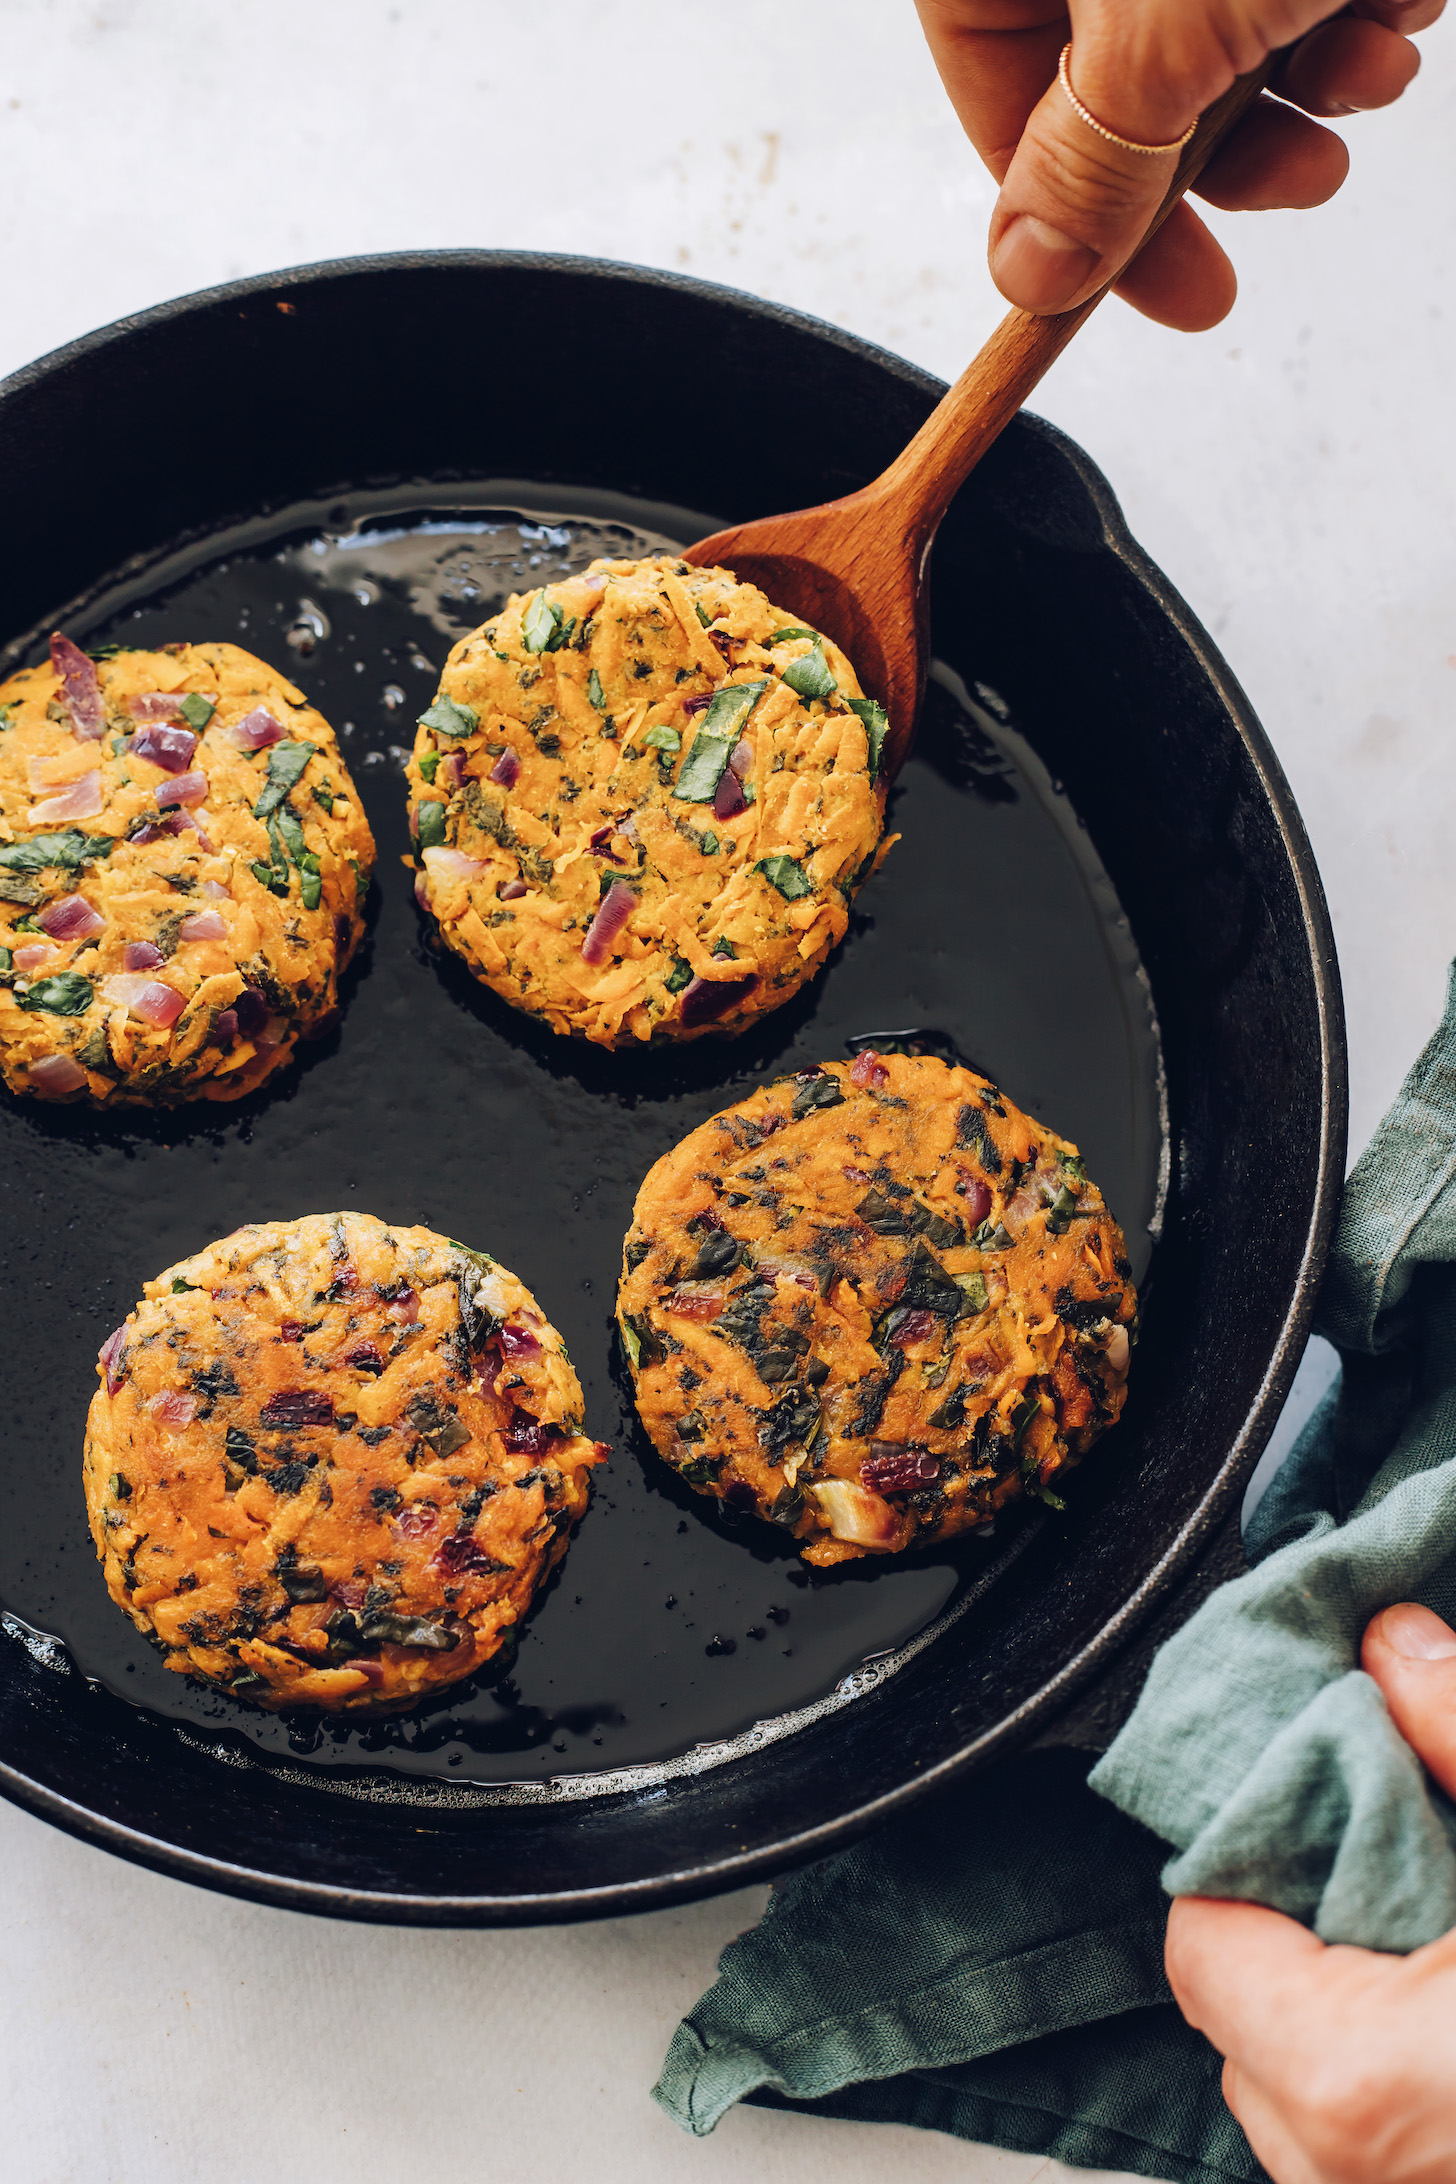 Partially cooked sweet potato fritters in a cast iron skillet